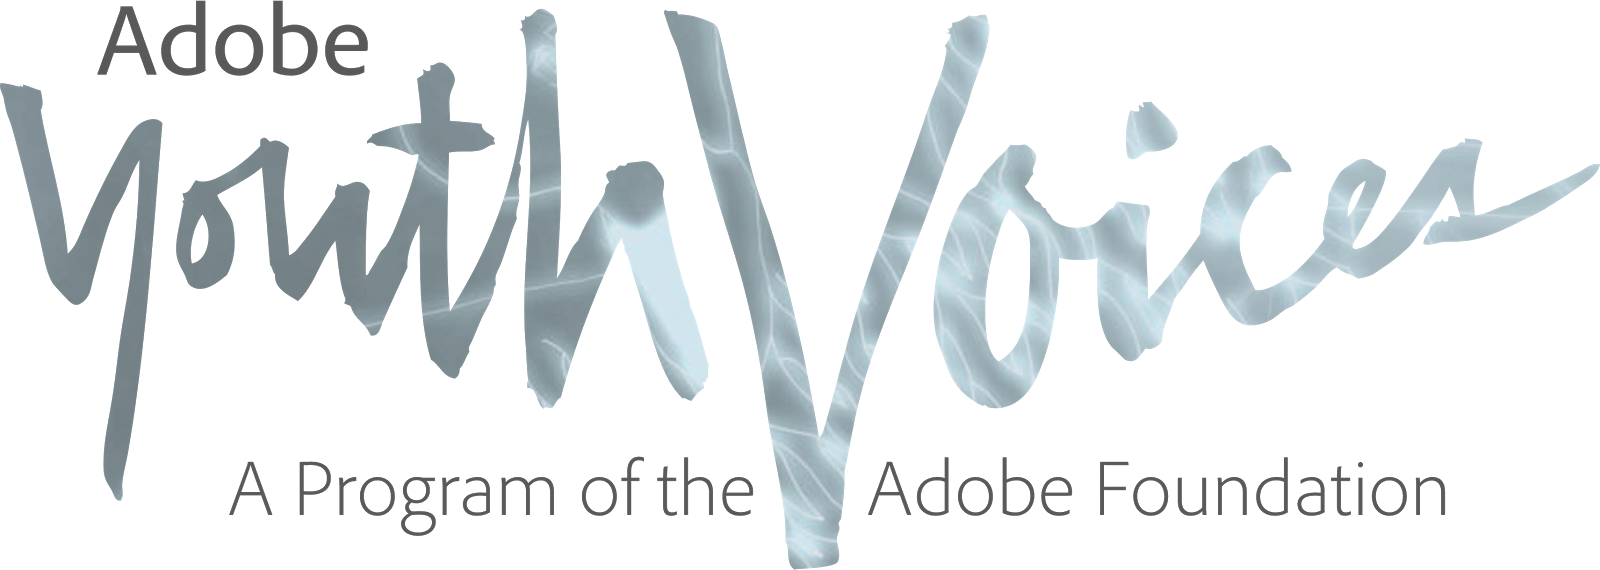 Adobe Youth Voices, FARO Indios Verdes